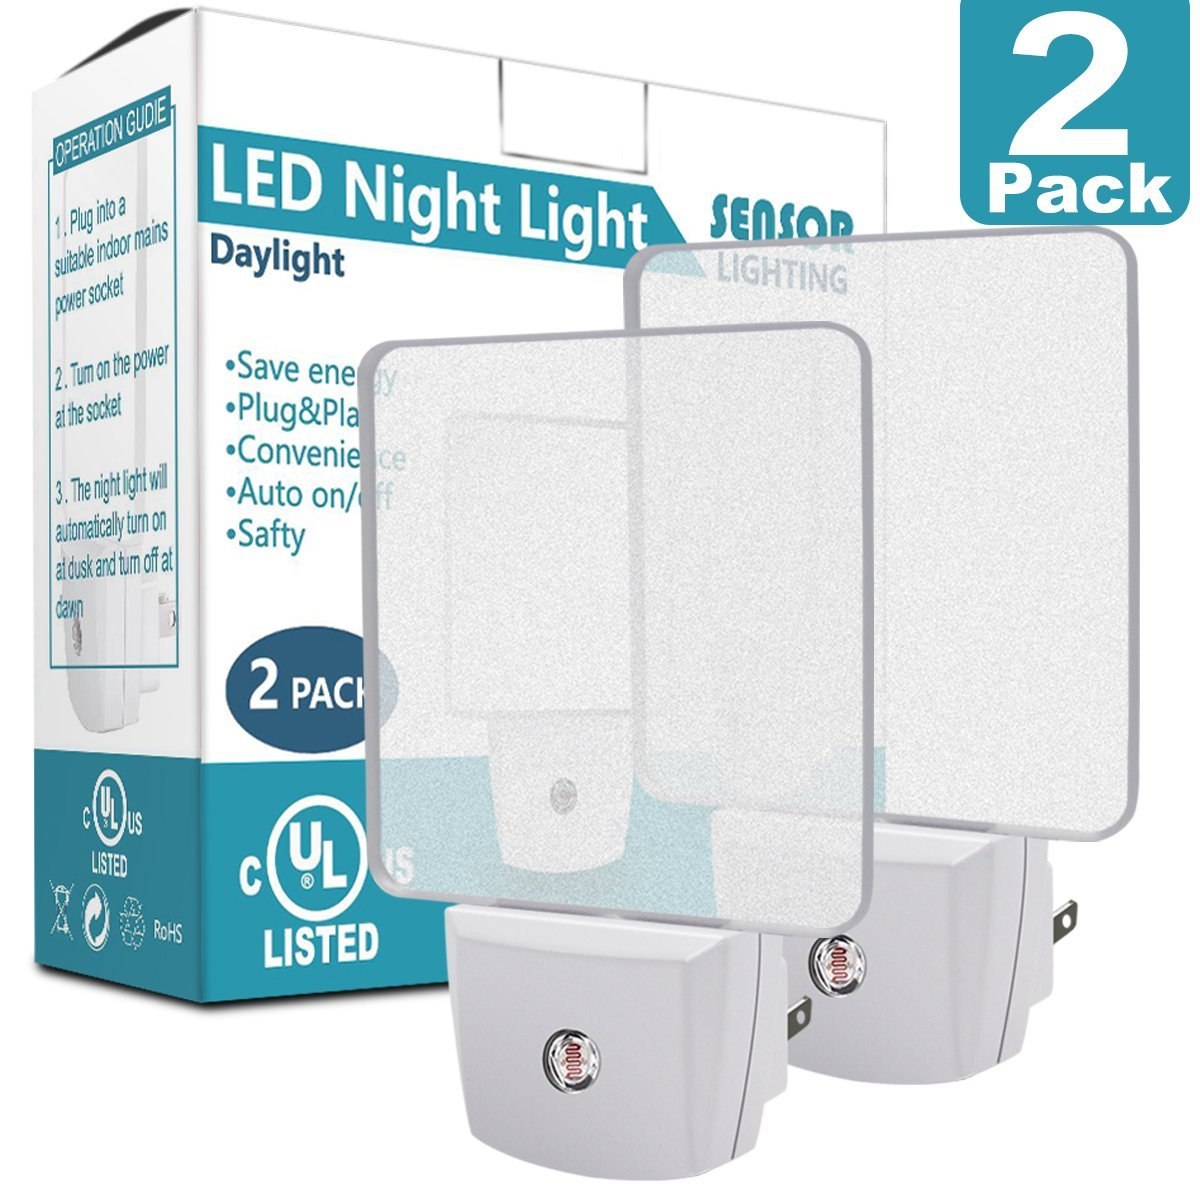 LED Night Light with Smart Light Sensor, Costech UL Listed Plug in Cordless Wall Light with Daylight Auto Sensor On/Off Dusk to Dawn for Bedroom, Bathroom, Hallway, Stairway, Kitchen (2 Pack)